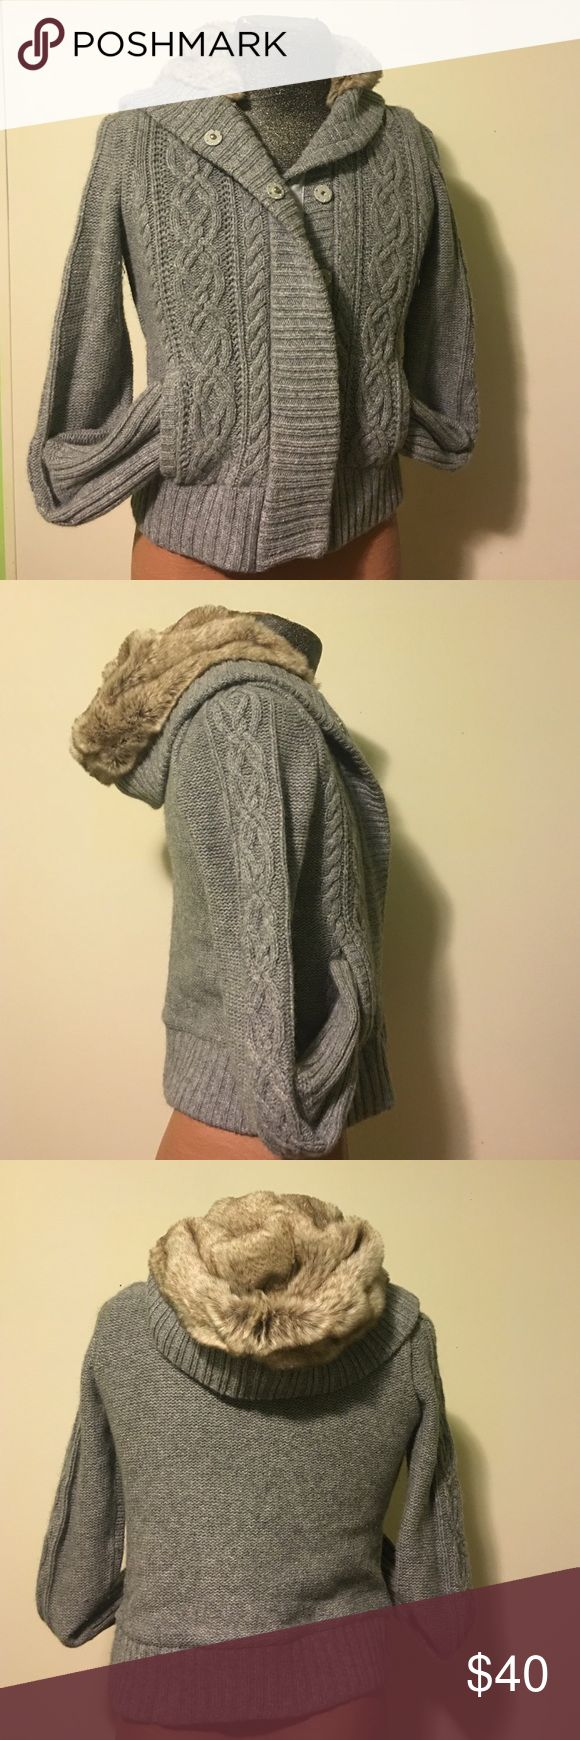 American Eagle outfitters sweater American Eagle outfitters sweater very good condition size medium no stains rips or holes American Eagle Outfitters Jackets & Coats Blazers